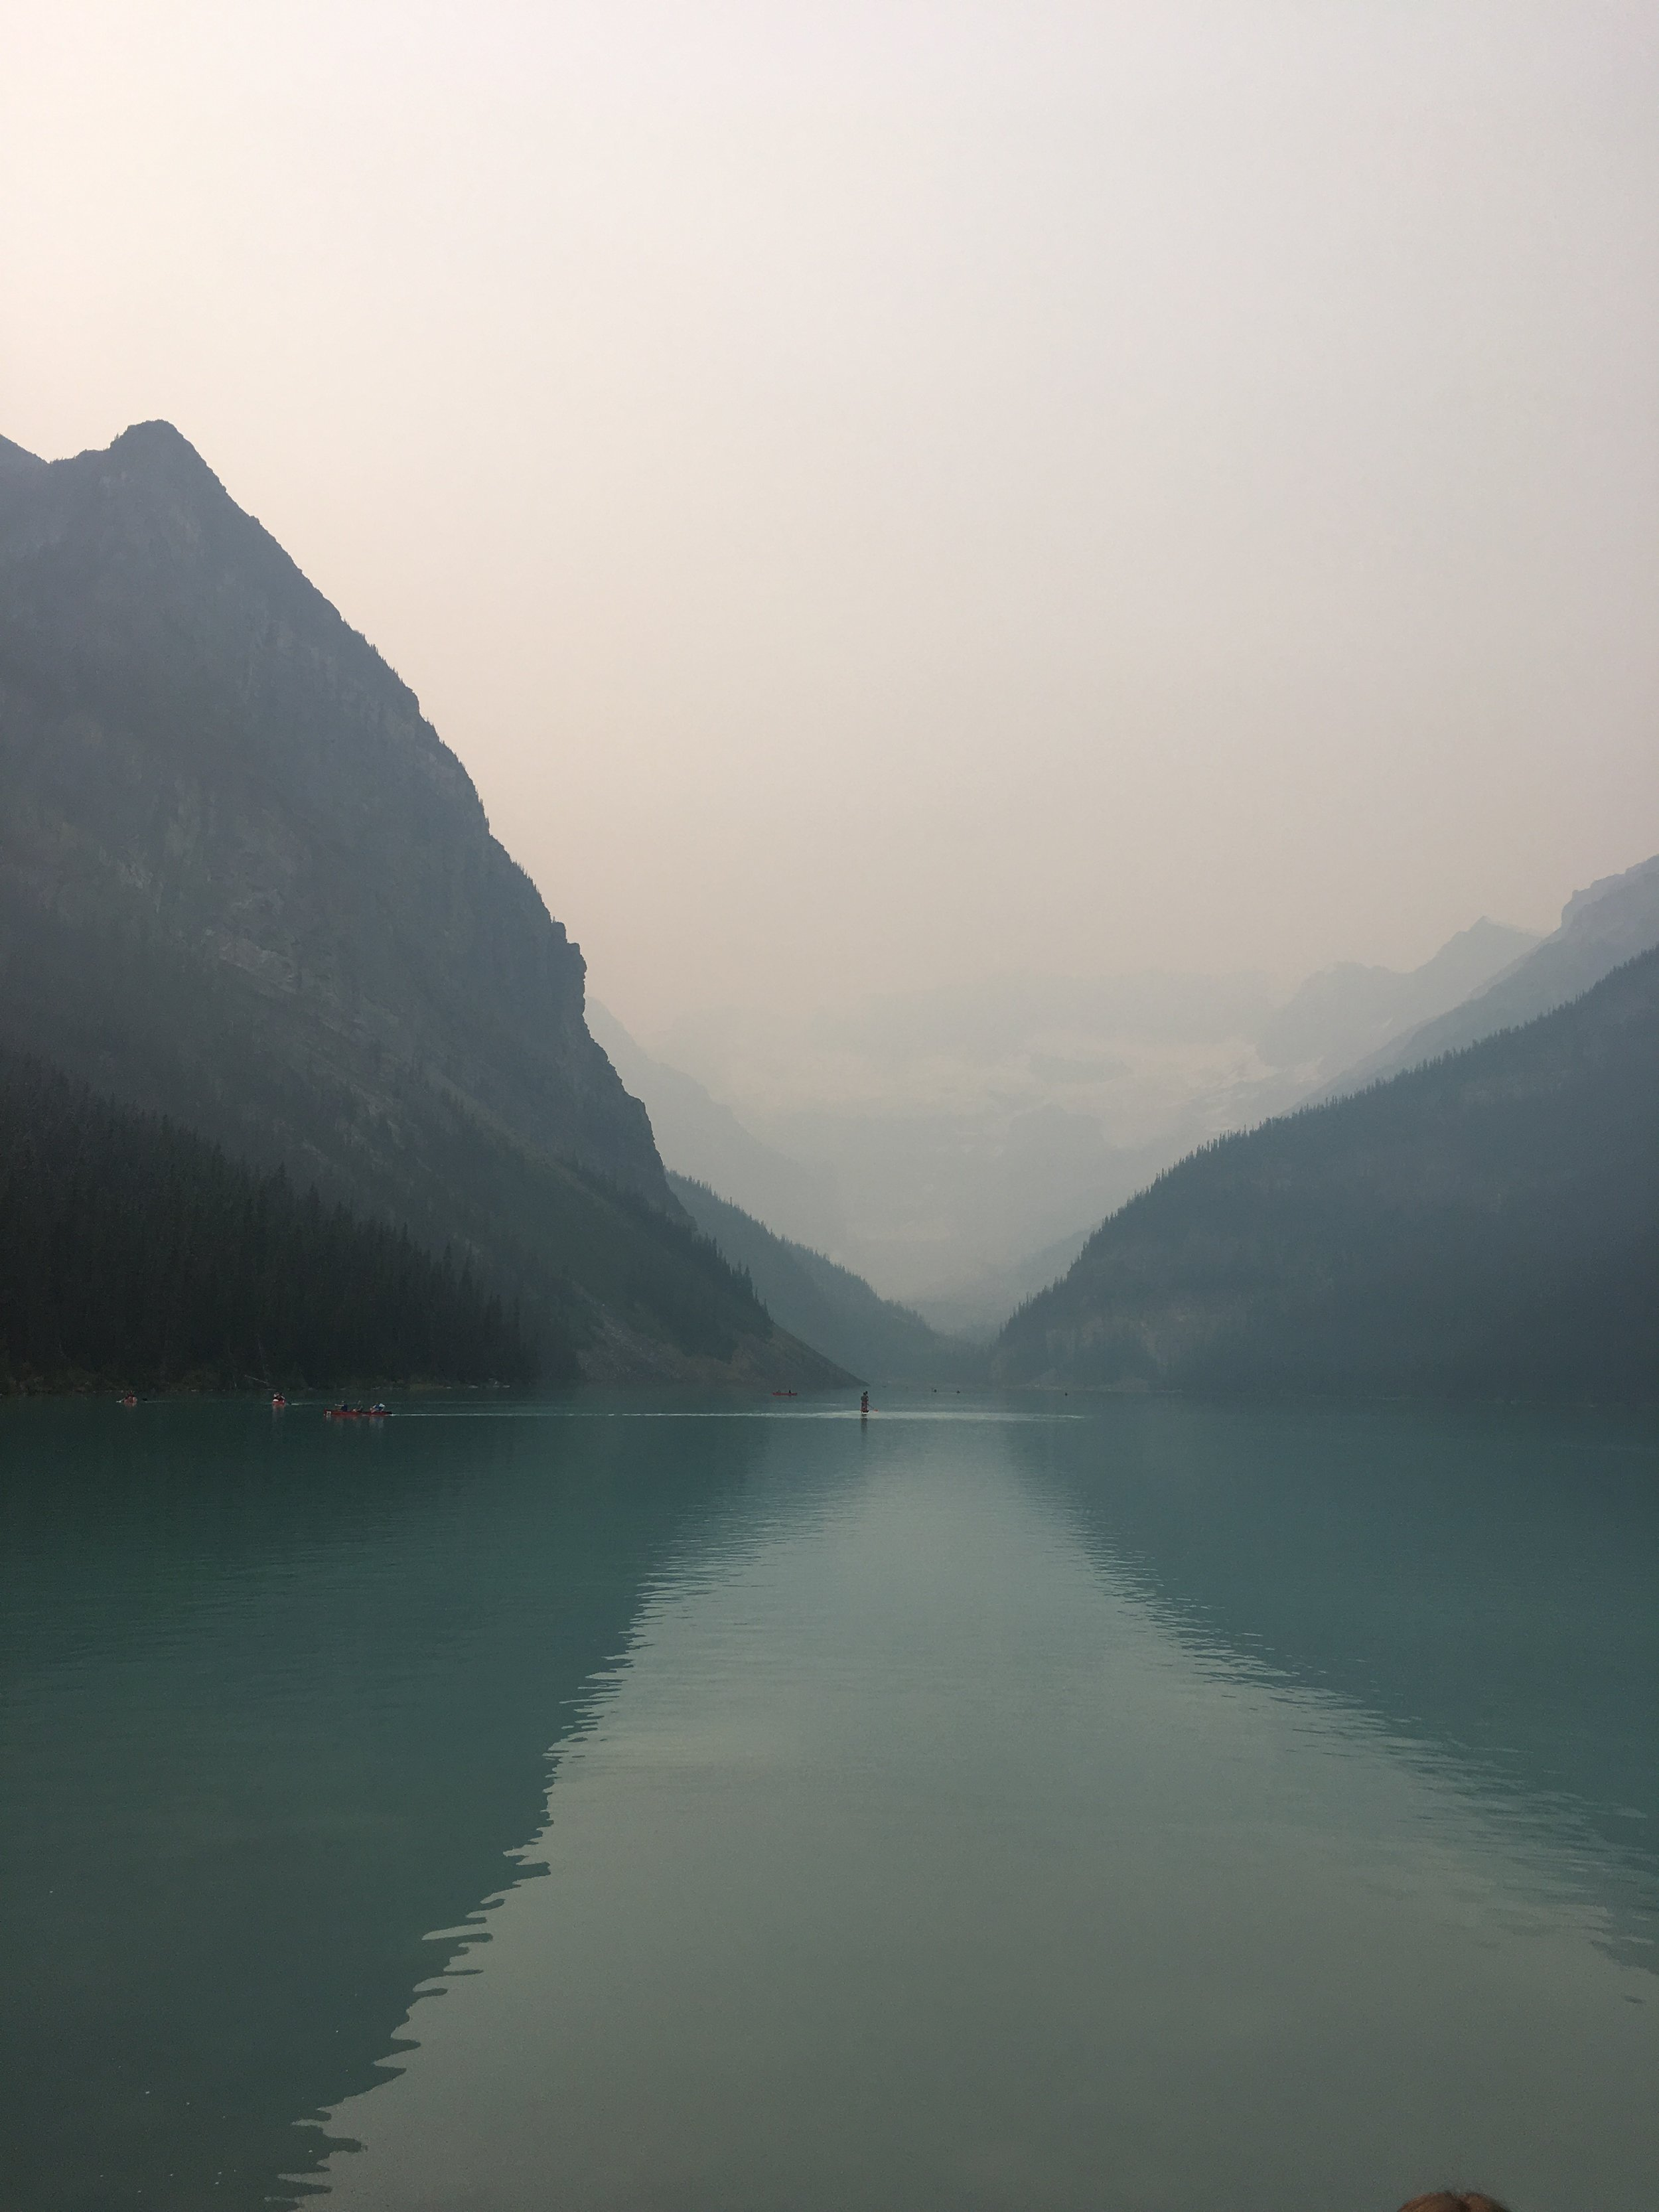 Lake Louise in Banff. The peaks and glacier are obscured by the wildfire smoke.